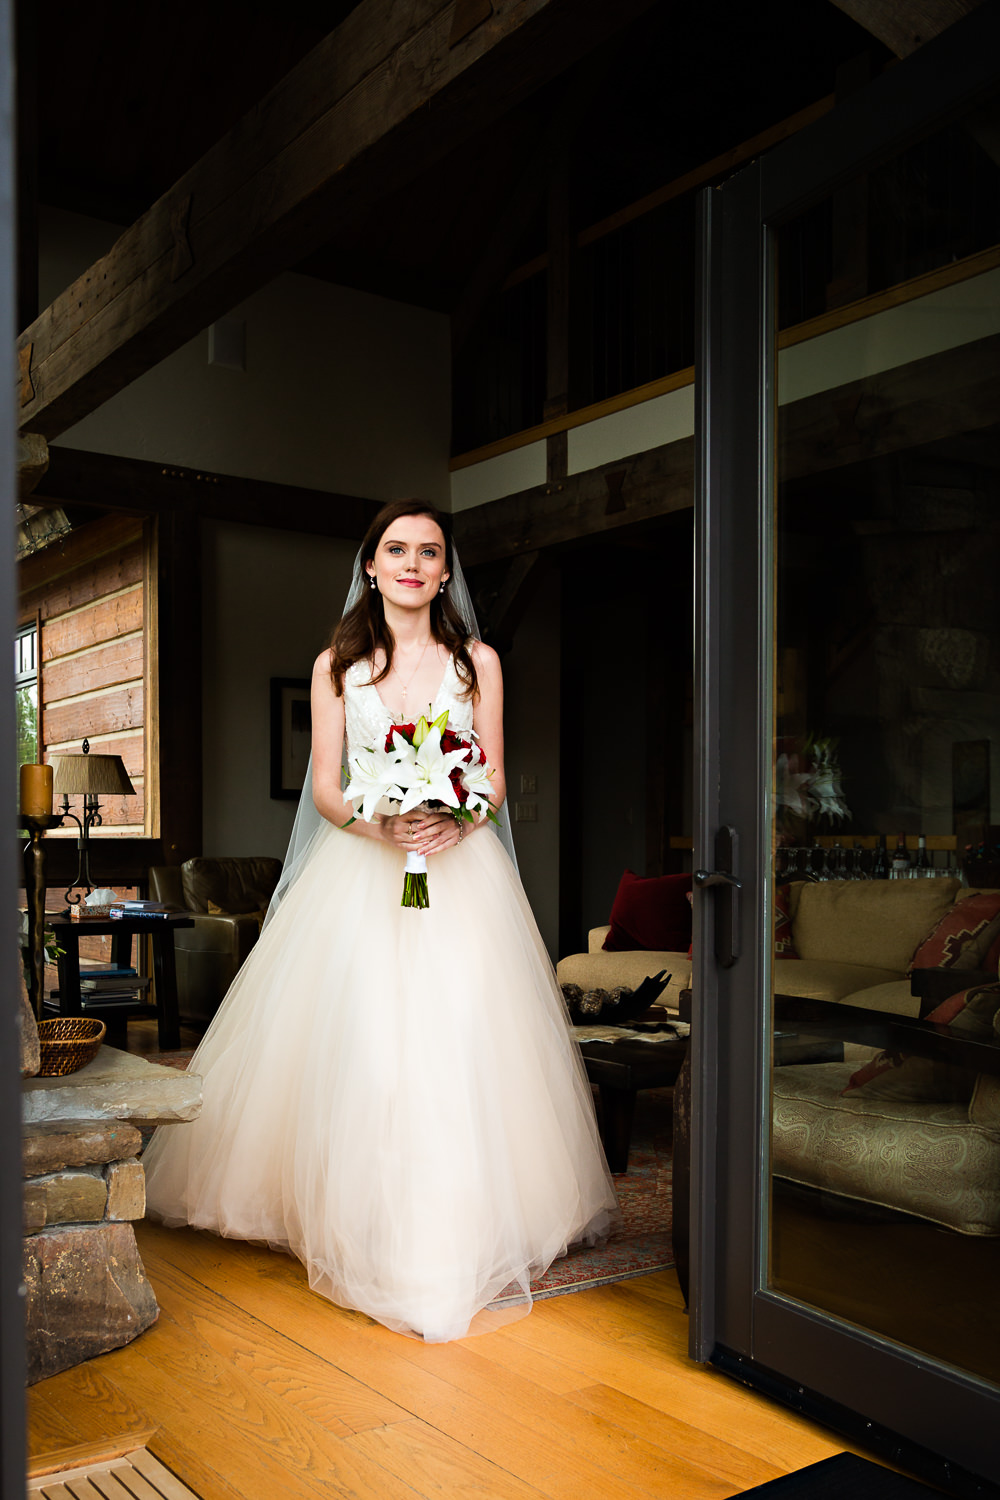 big-sky-wedding-becky-brockie-photography-wedding-aisle-bride-nataliia.jpg